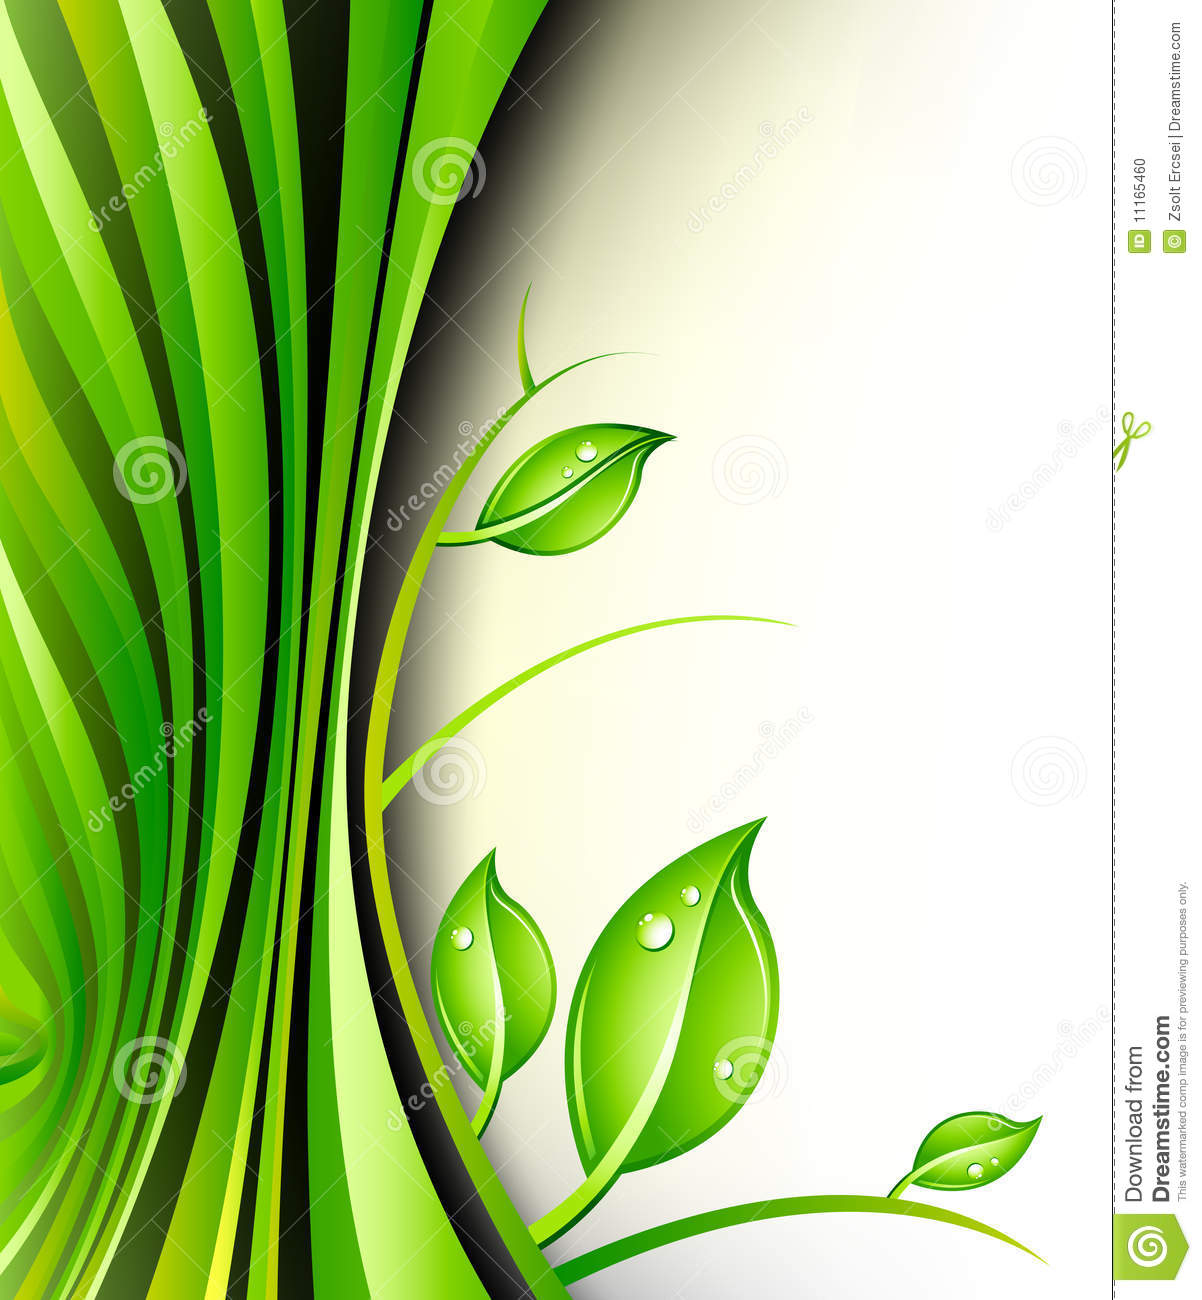 Green Plant Design Stock Photo Image 11165460